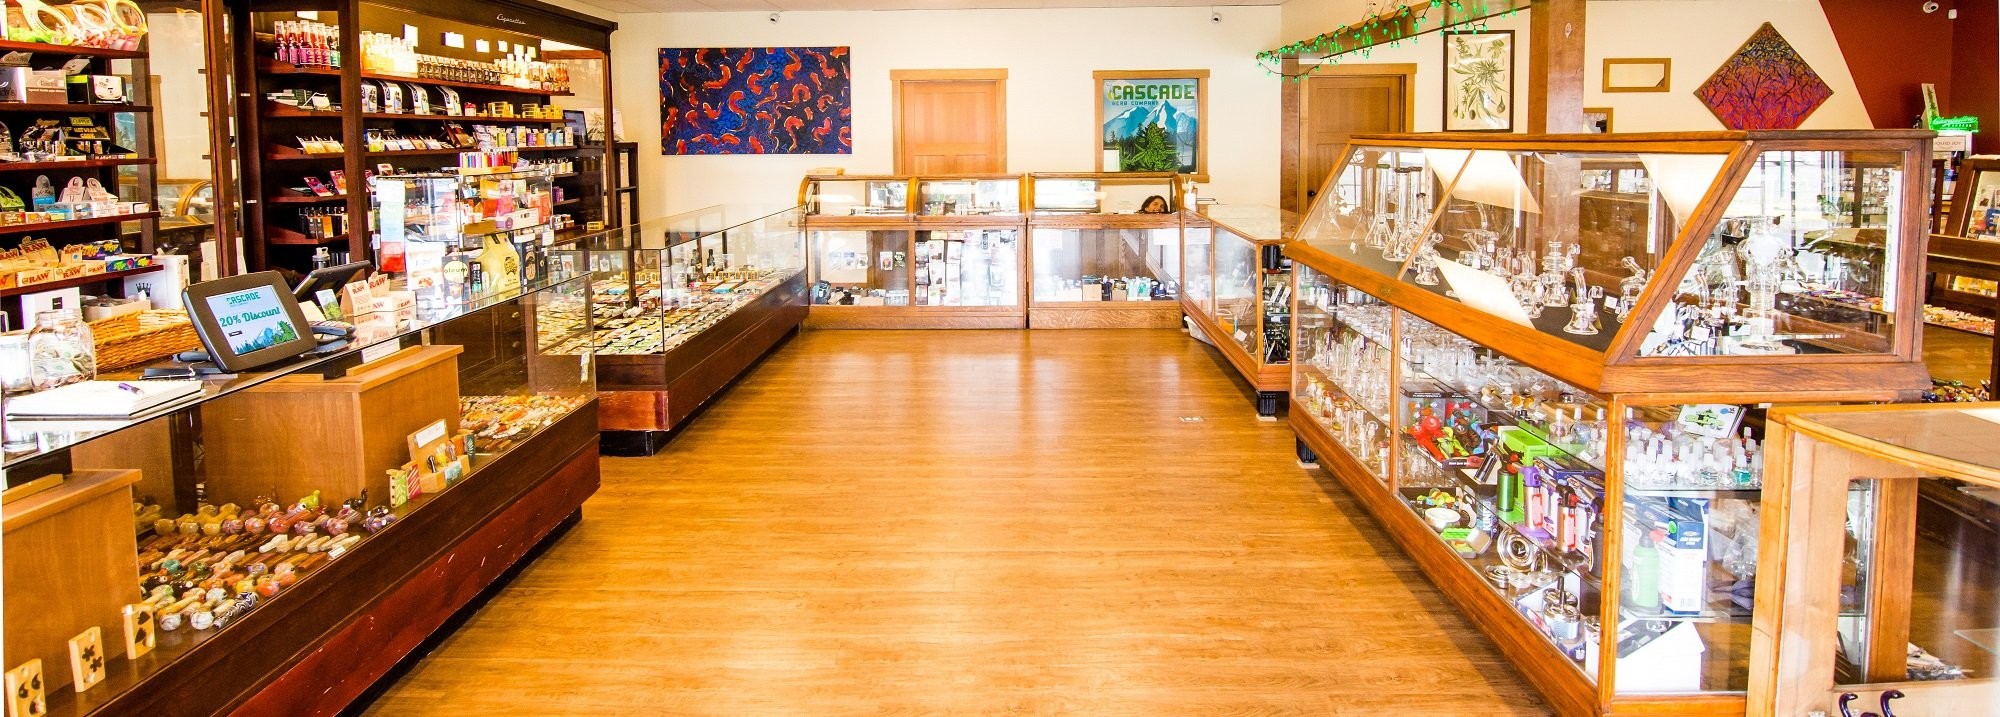 Cascade Herb Co Store Interior